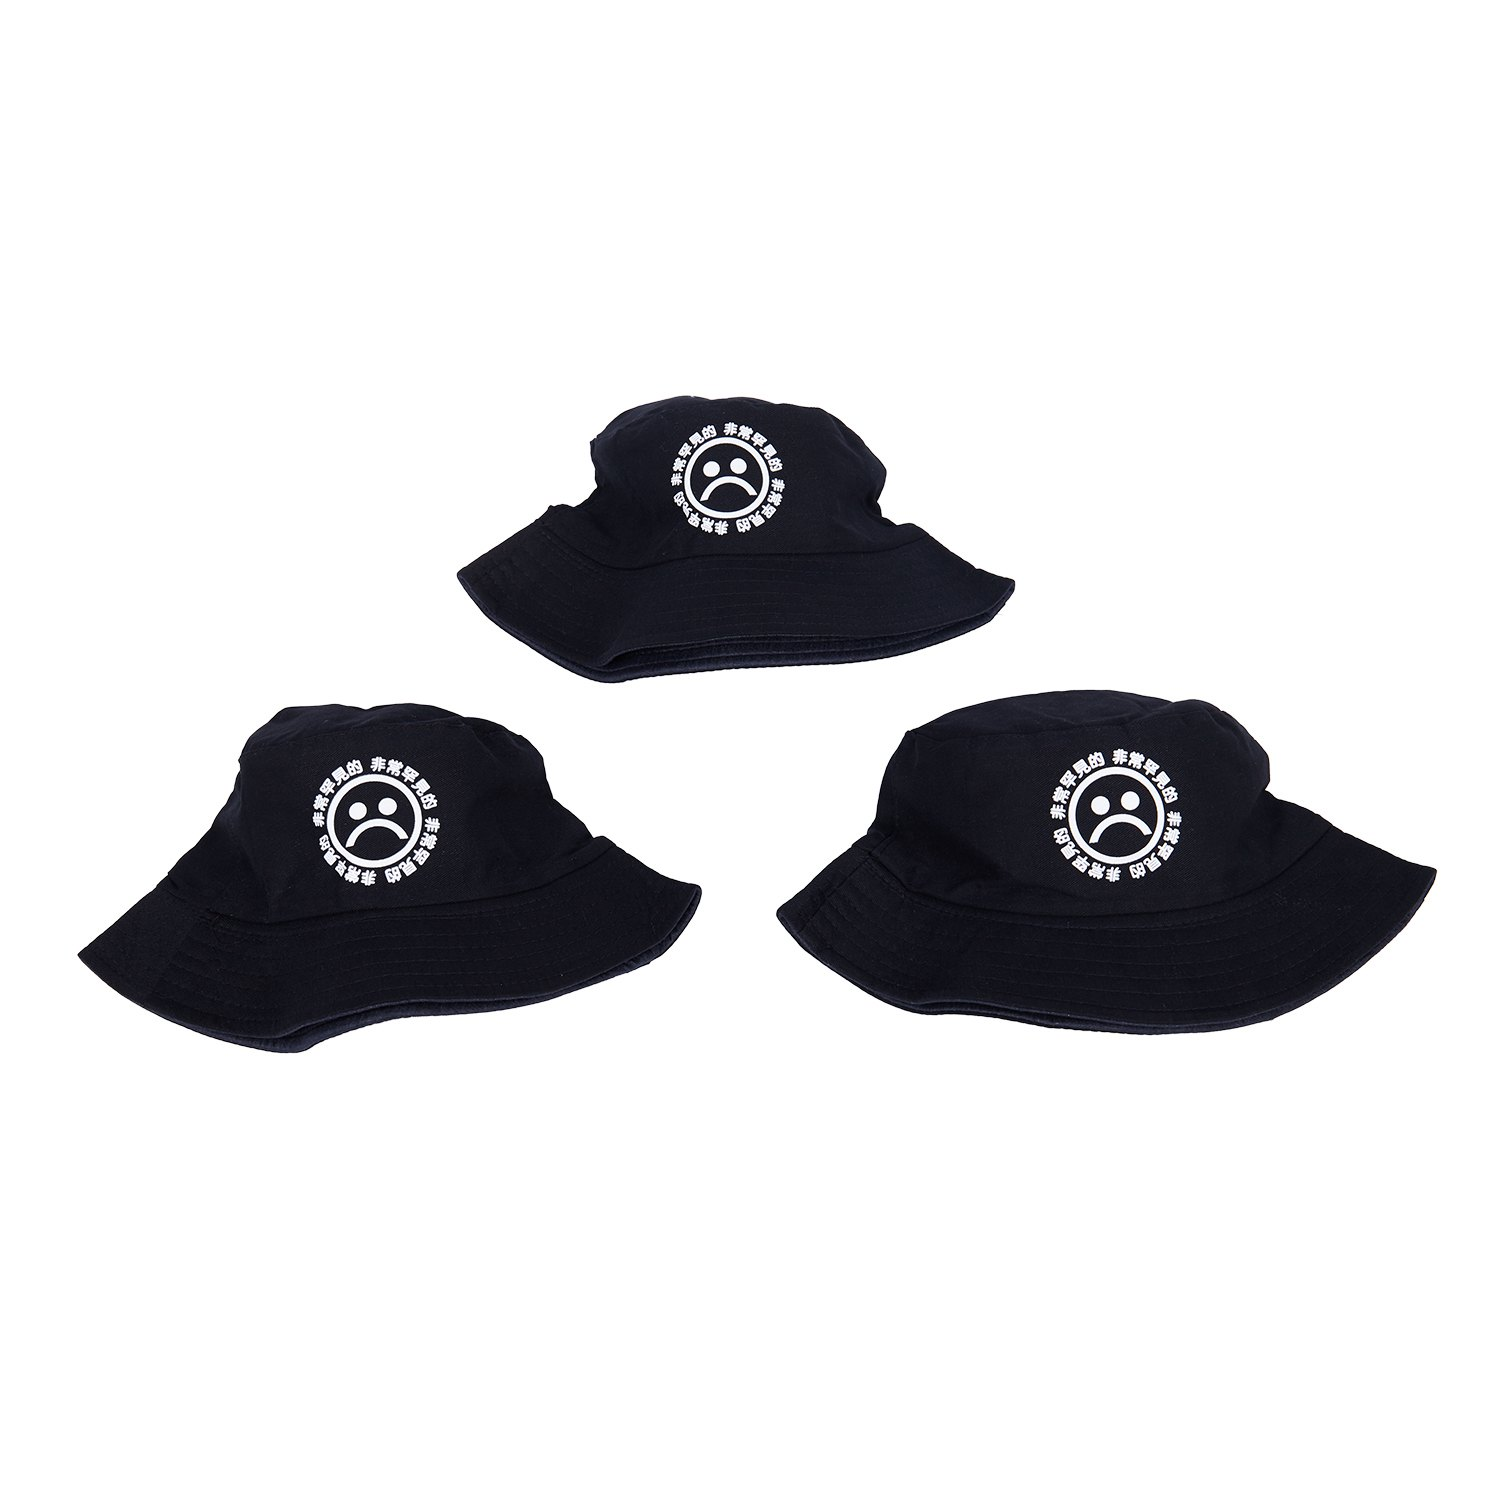 6a32f14c460 Men sad boys bucket hat festival accessory in bucket hats from mens  clothing accessories on alibaba